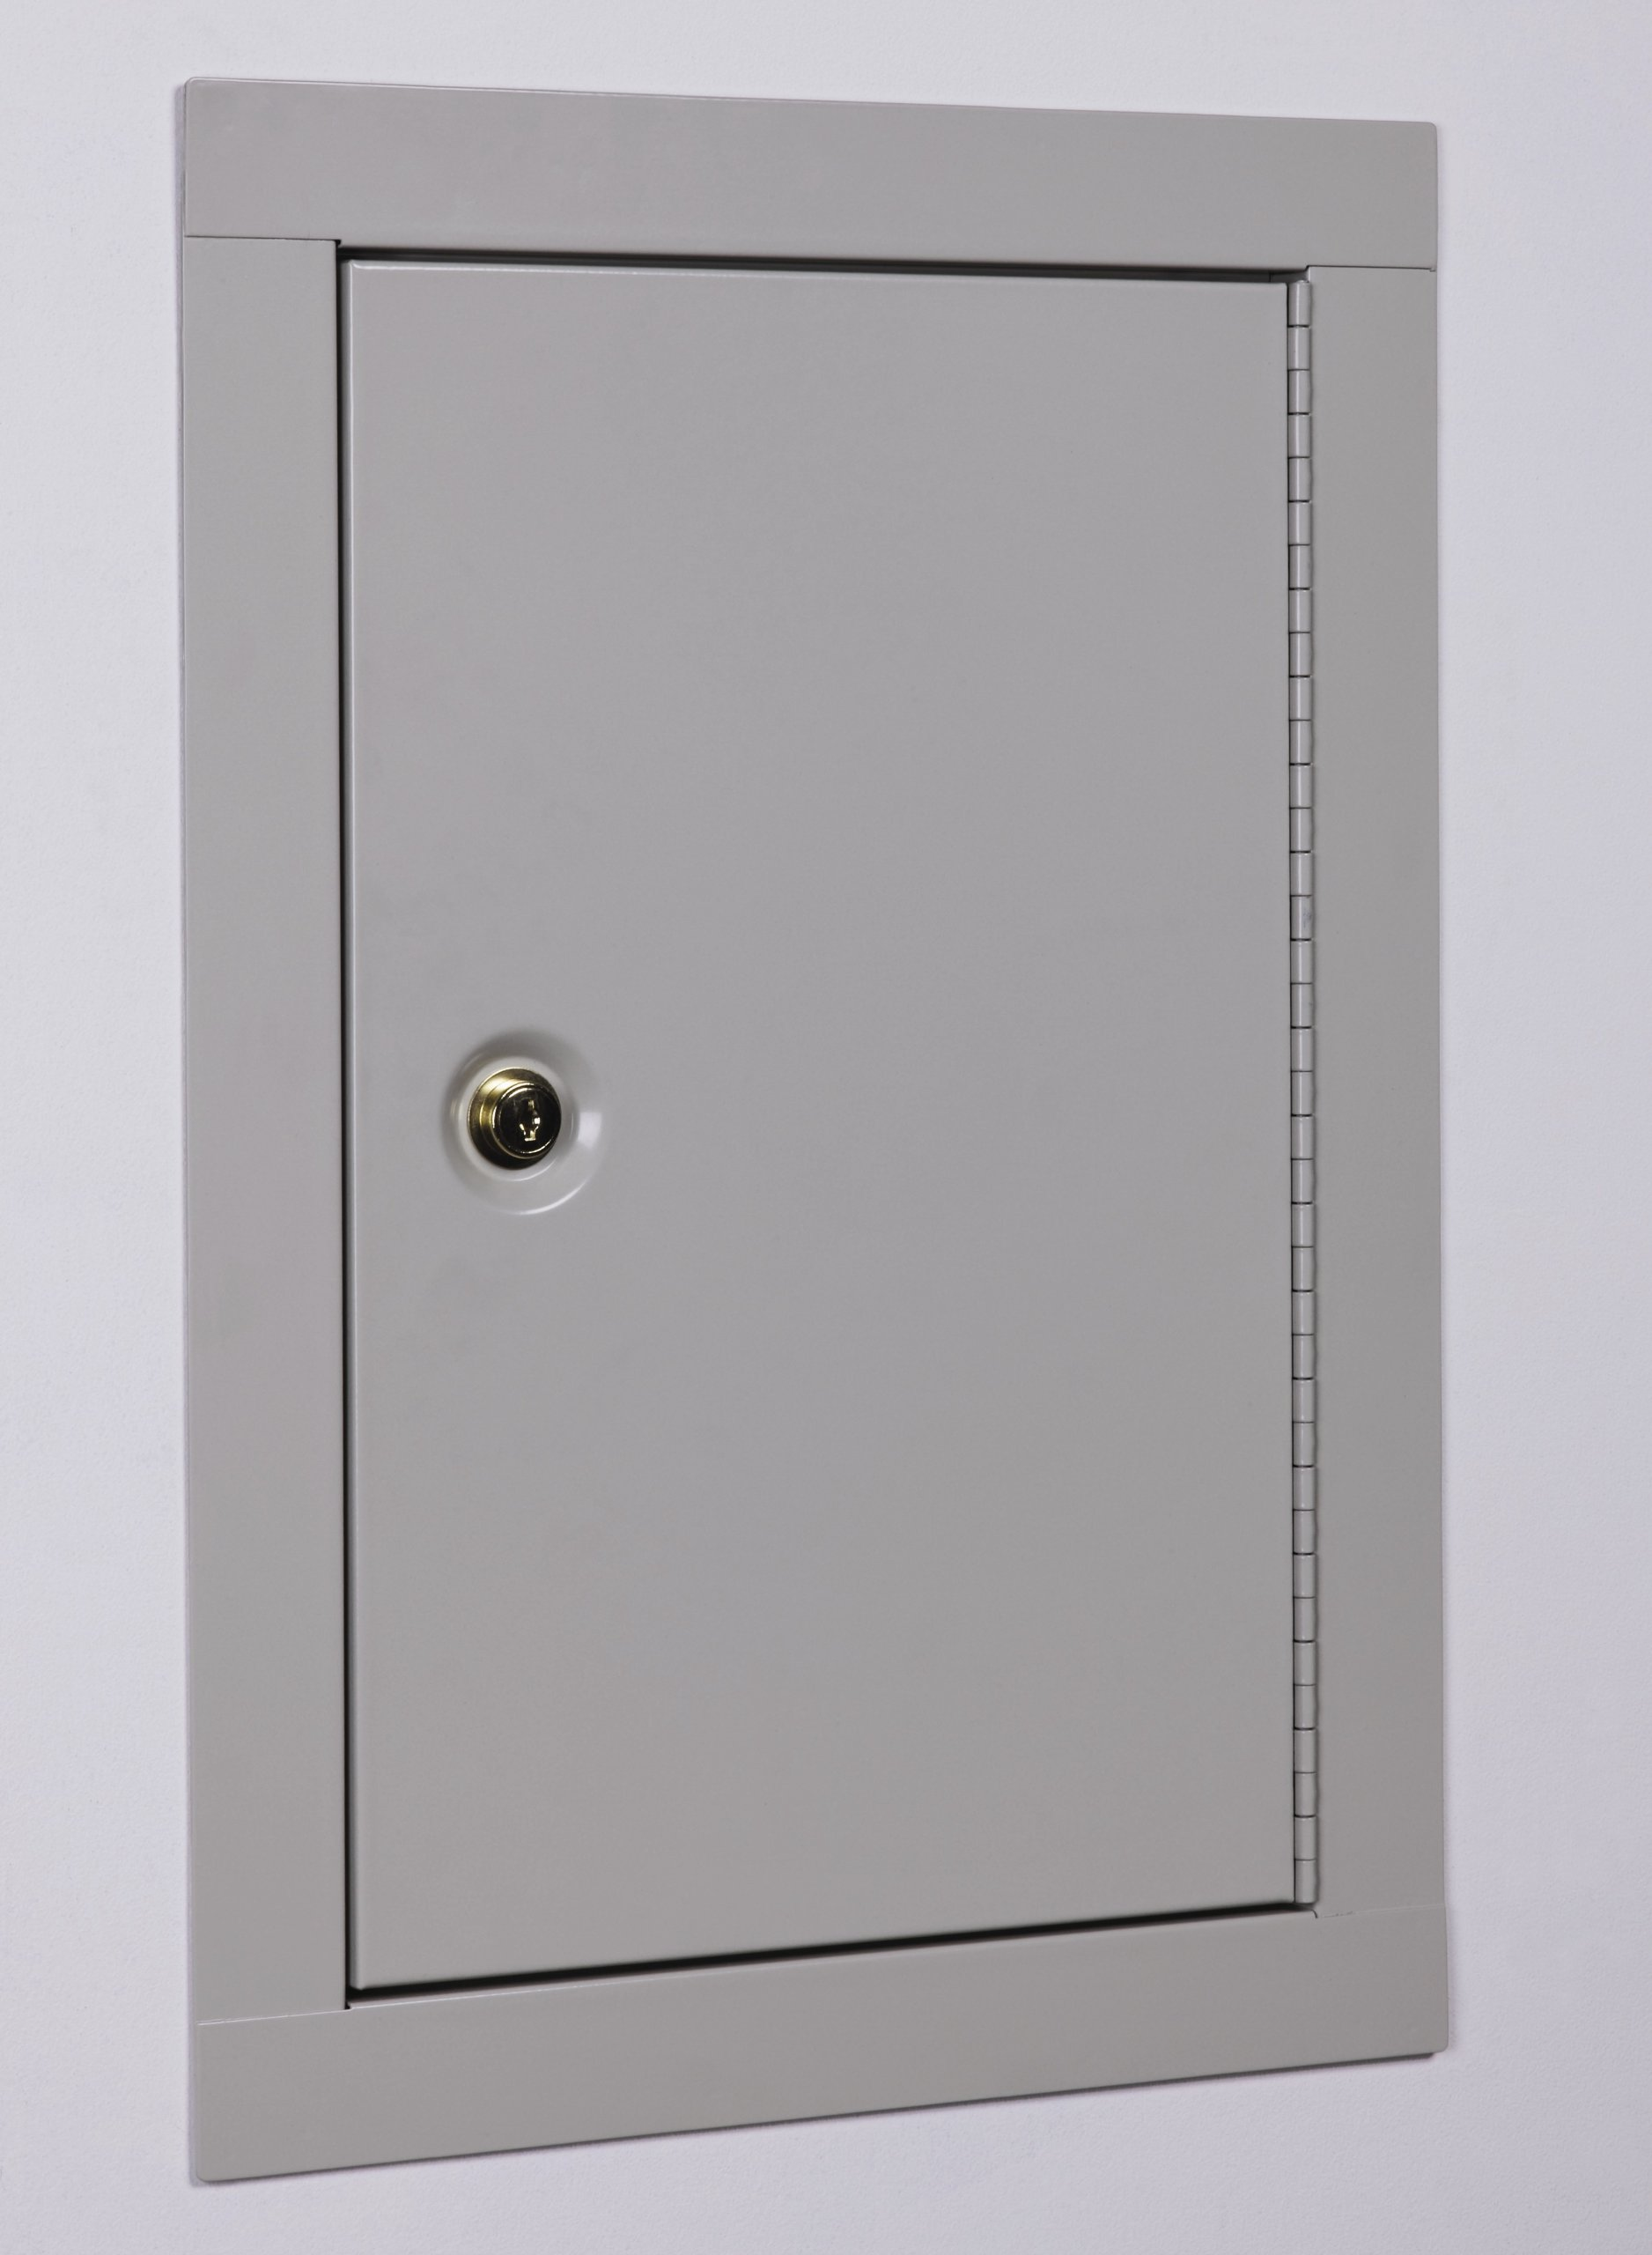 Stack-On IWC-22 In-Wall Cabinet